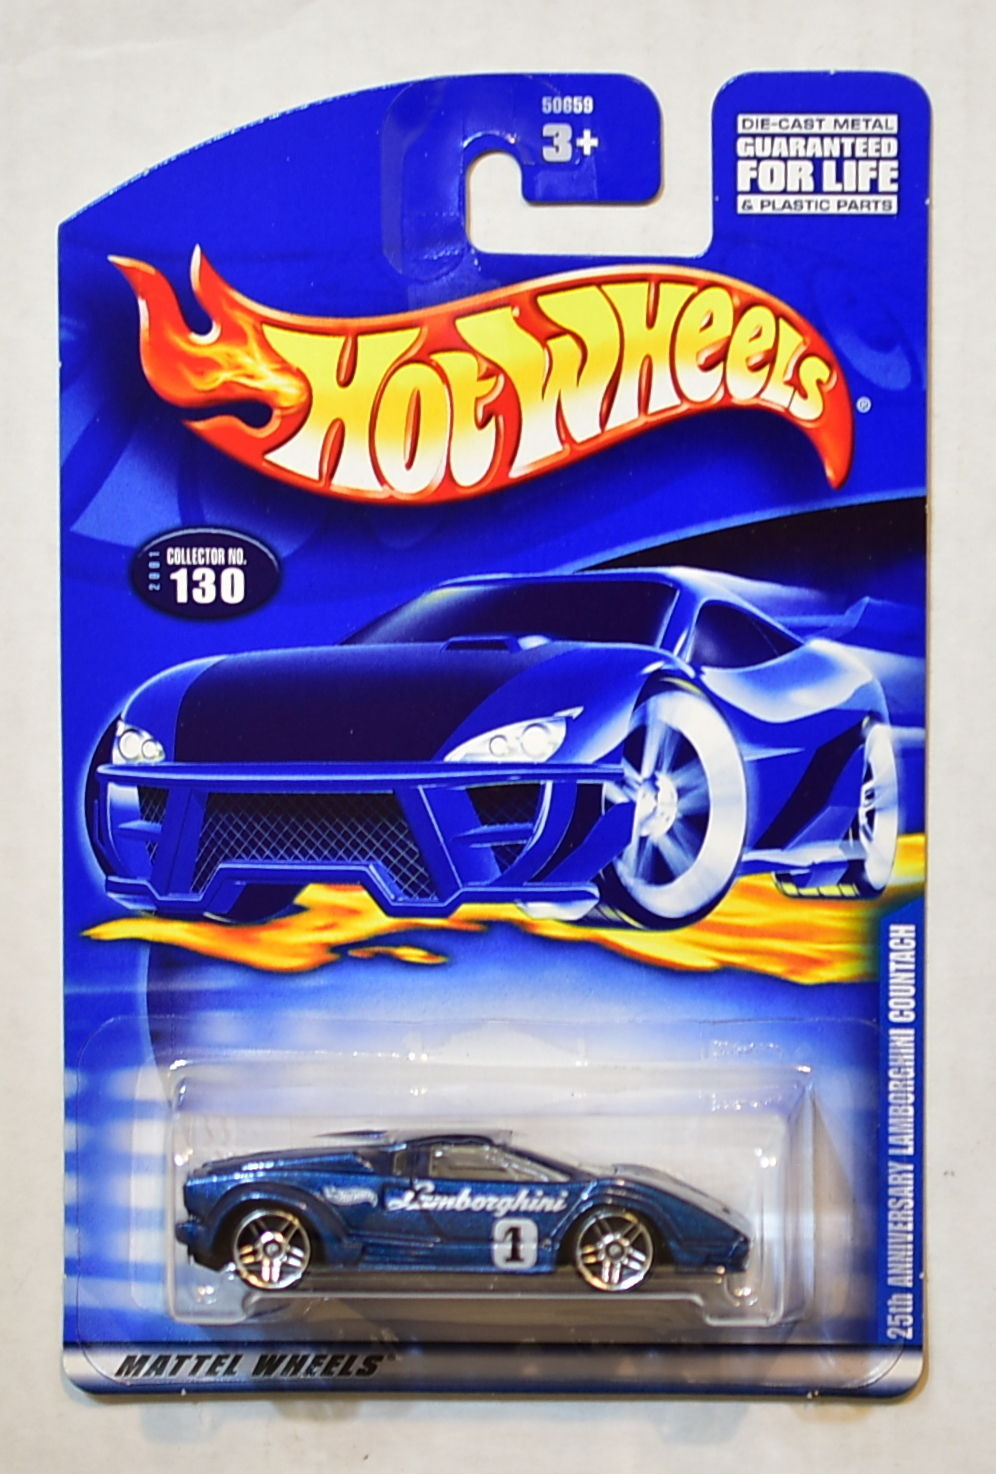 HOT WHEELS 2001 25TH ANNIVERSARY LAMBORGHINI COUNTACH #130